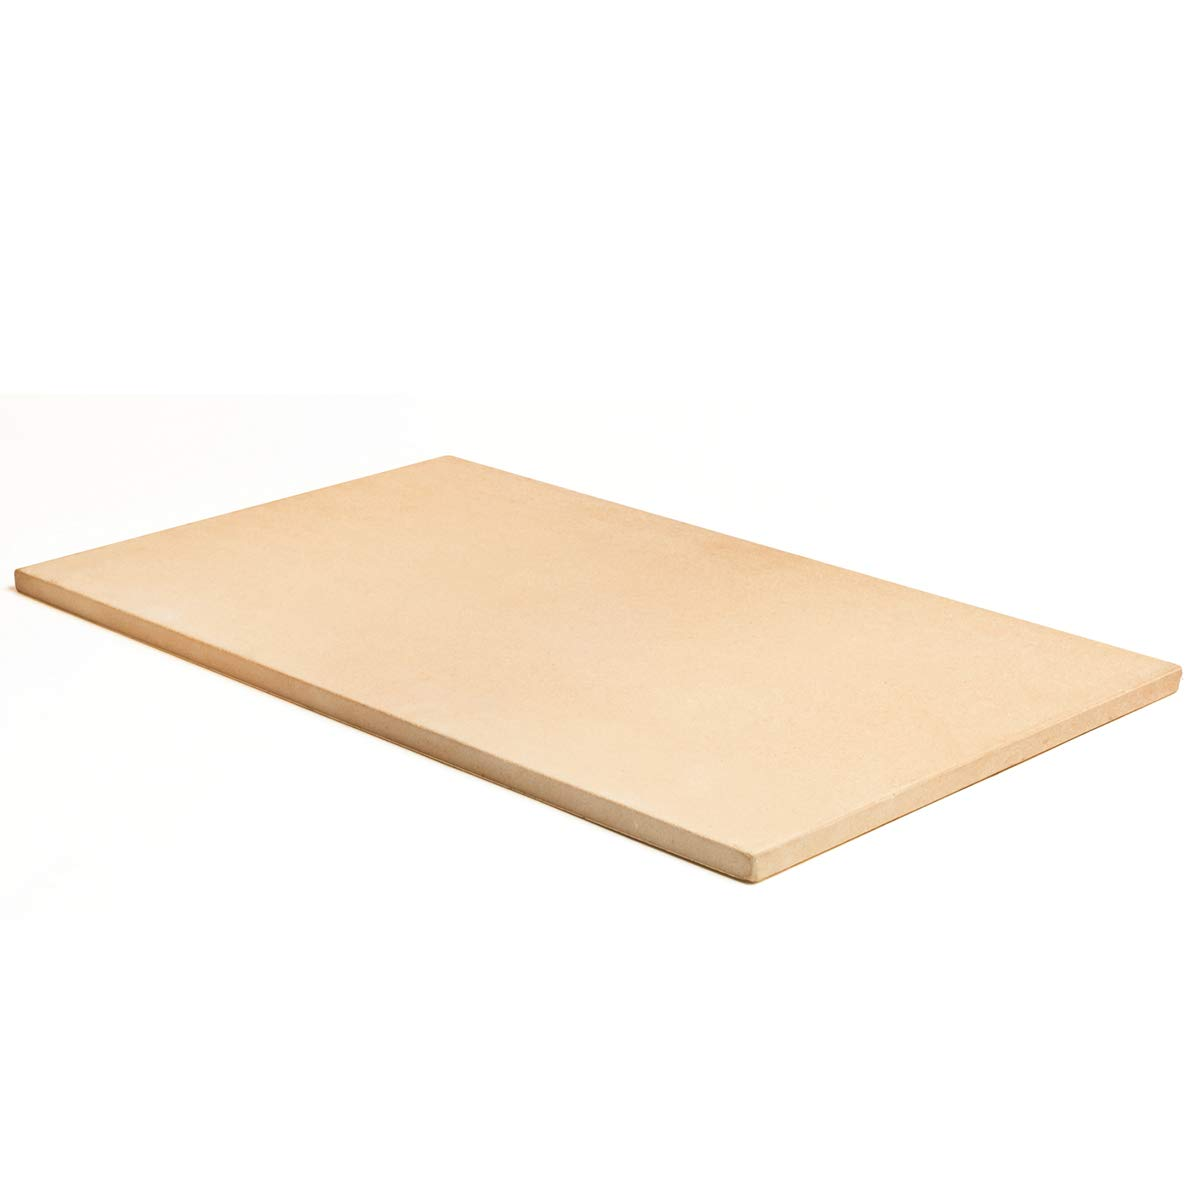 Pizzacraft PC9899 Rectangular ThermaBond Baking and Pizza Stone for Oven or Grill by Pizzacraft